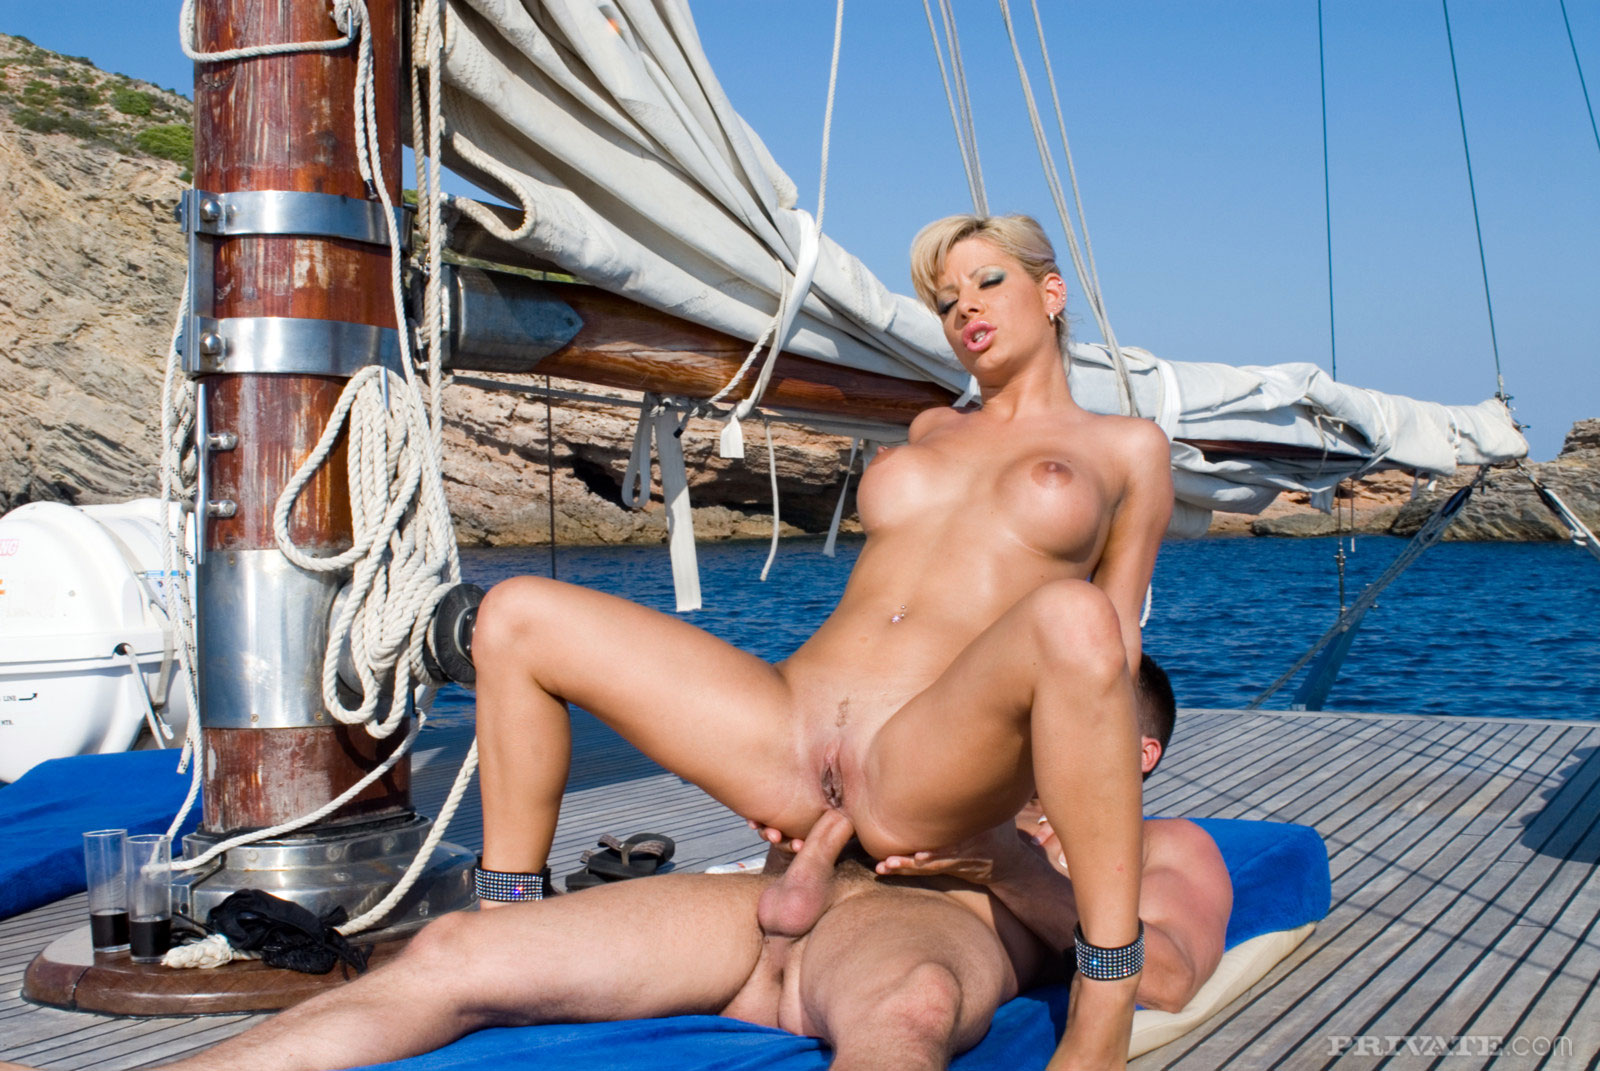 Stephanie sierra gets fucked hard on a boat